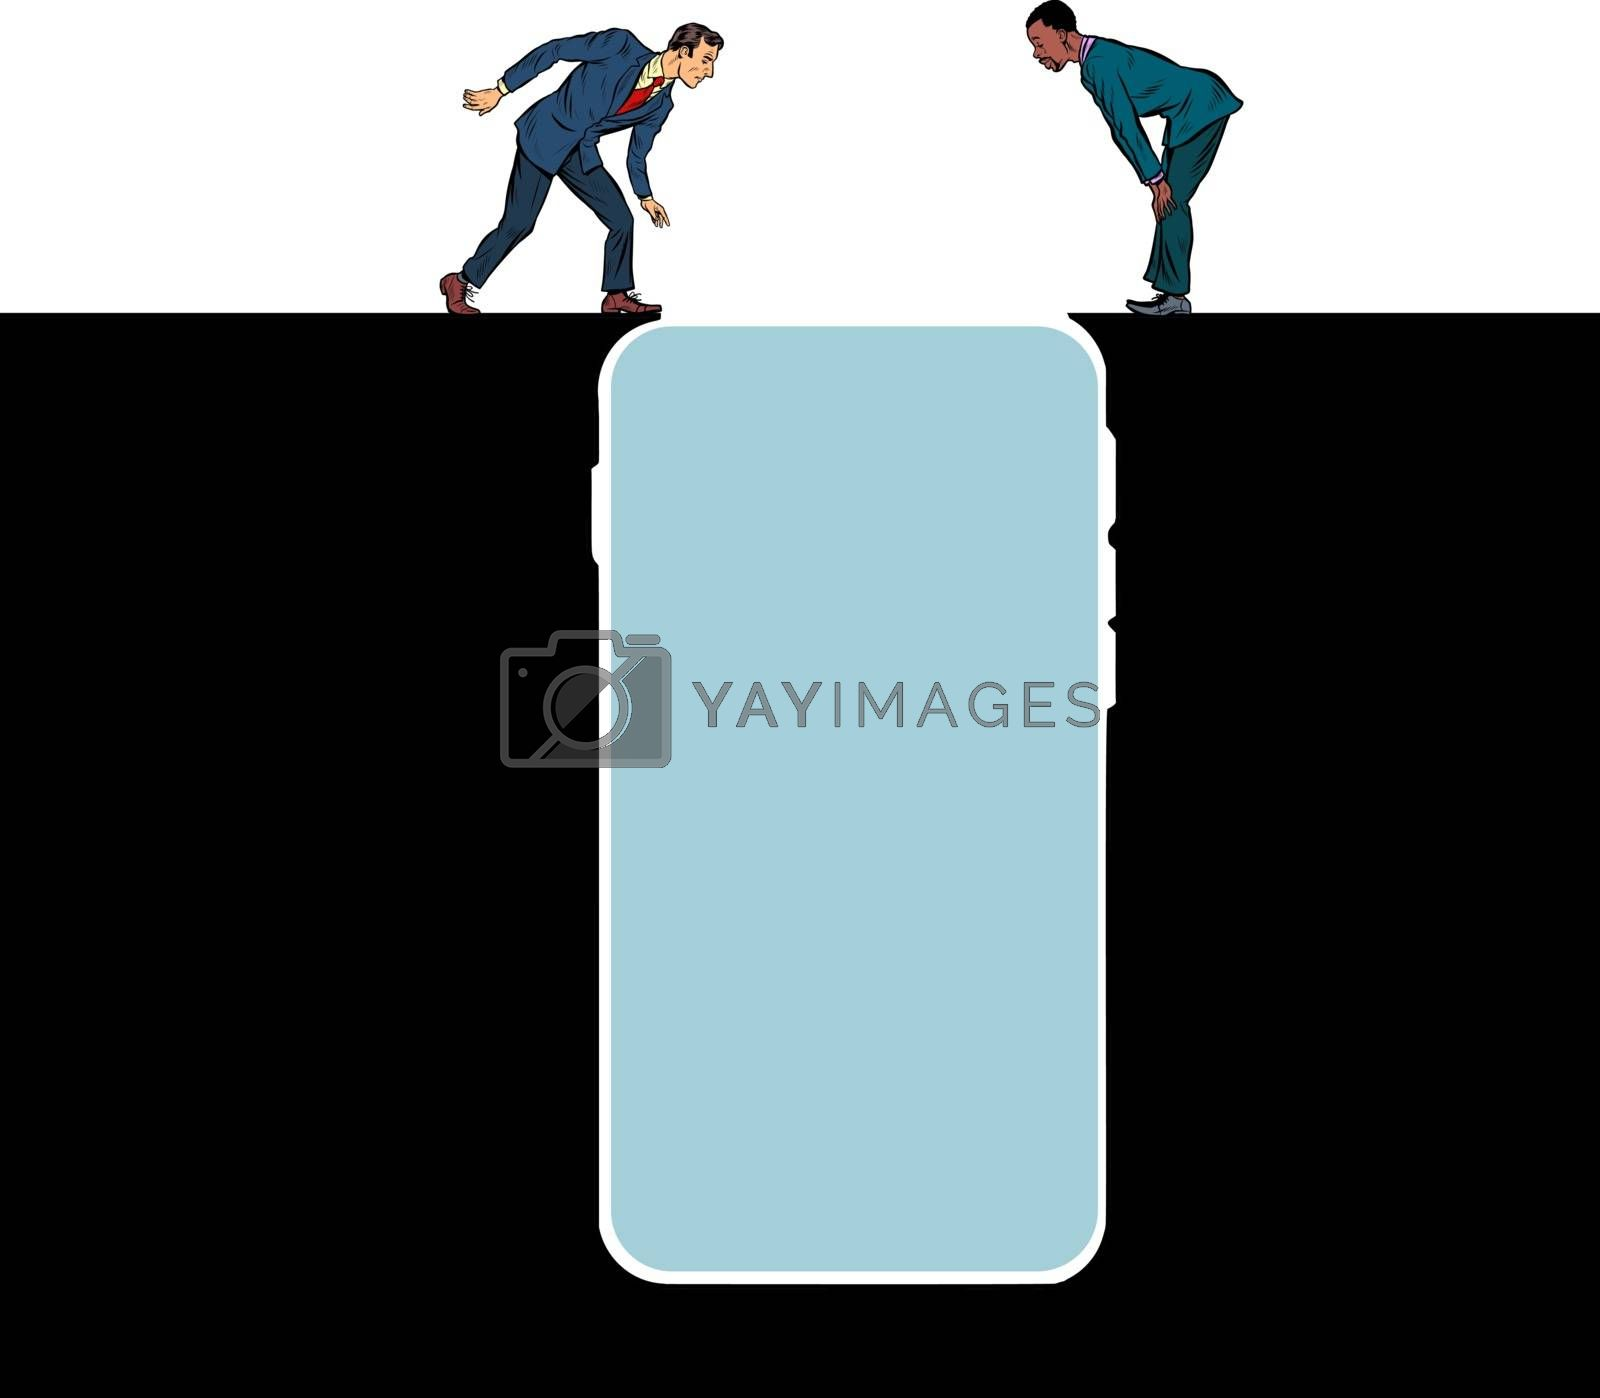 smartphone gadget Internet addiction. People on the edge of a precipice. Pit silhouette. Pop art retro vector illustration 50s 60s style